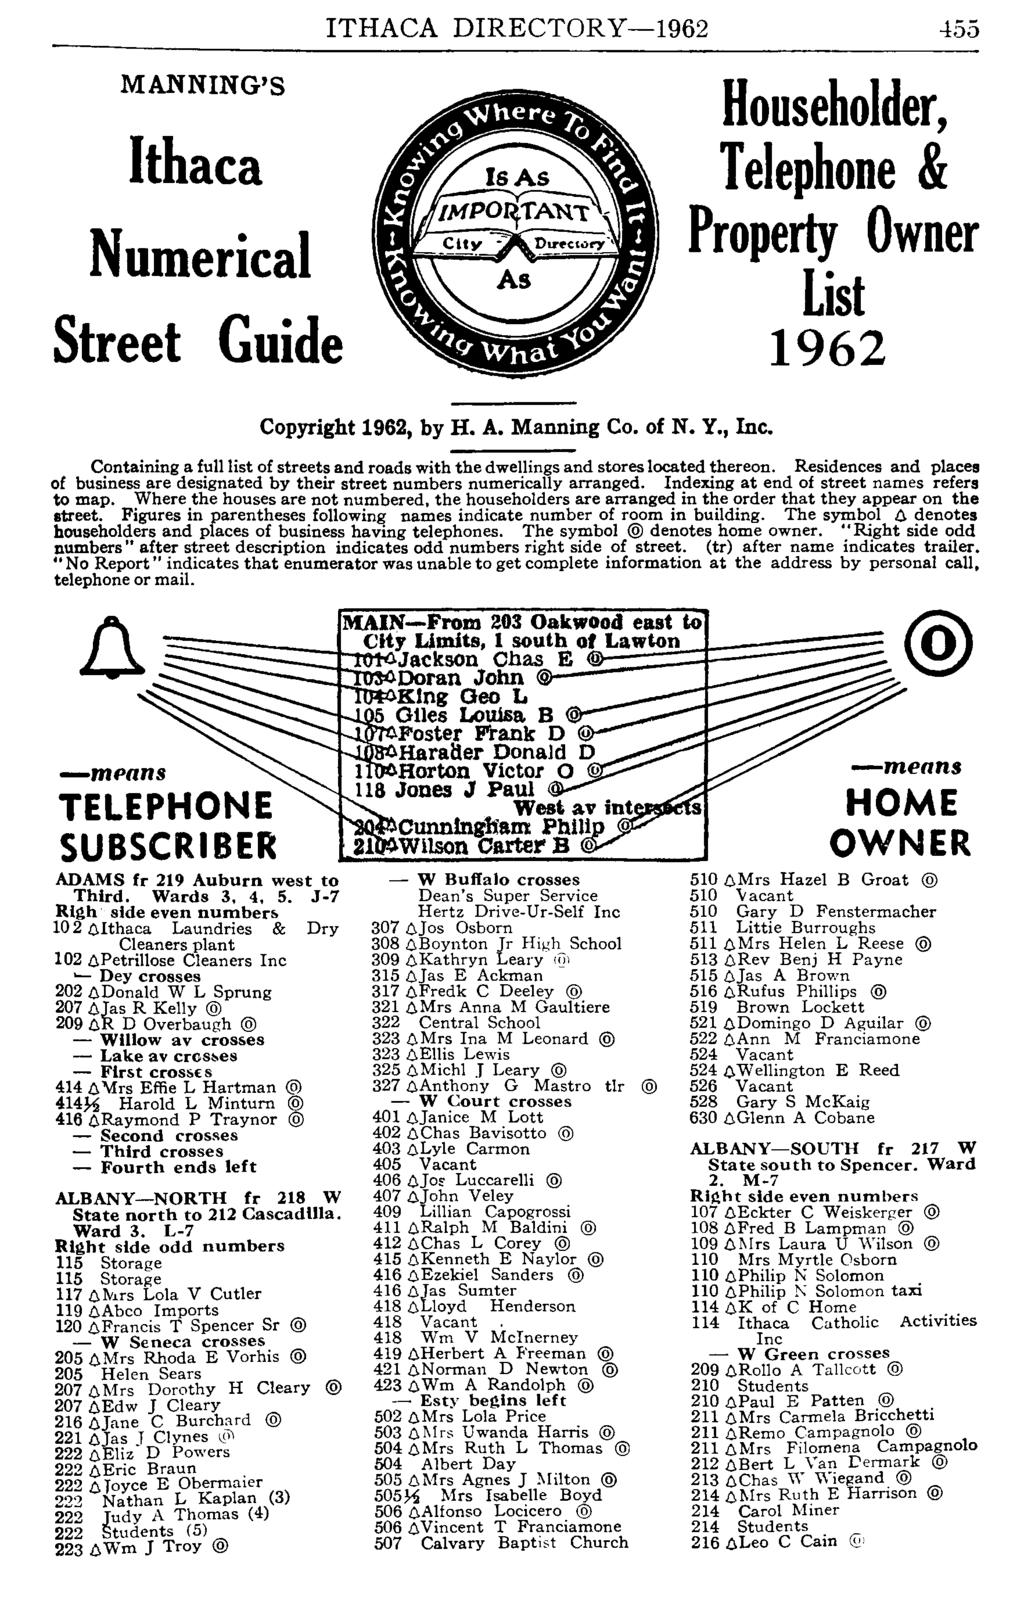 MANNING'S Ithaca Numerical Street Guide ITHACA DIRECTORY-1962-155 Copyright 1962, by H. A. Manning Co. of N. Y., Inc.